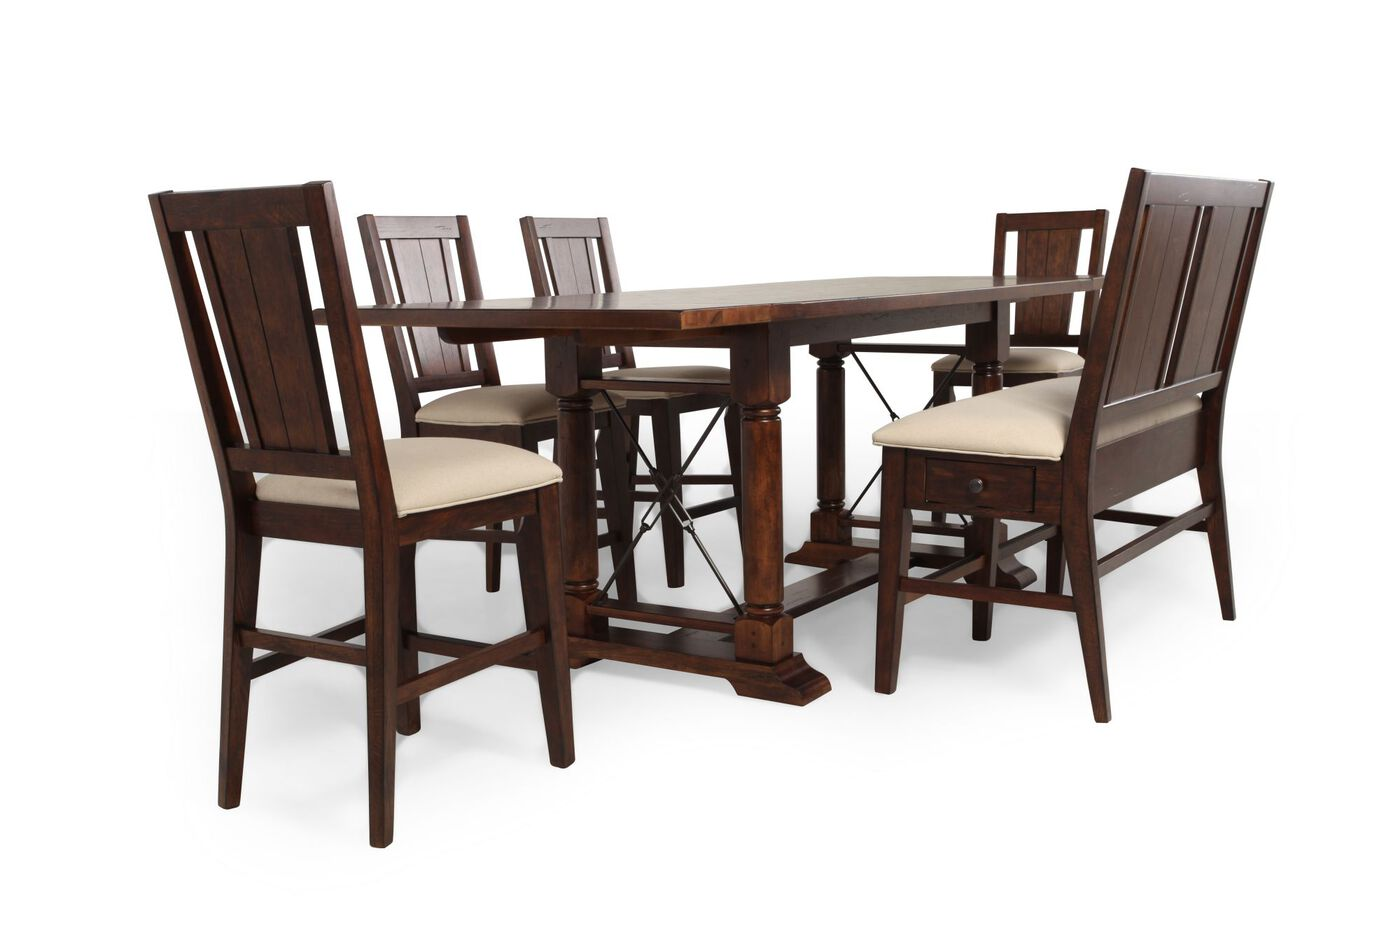 100+ [ Broyhill Dining Room Furniture ] | Broyhill Outdoor ...